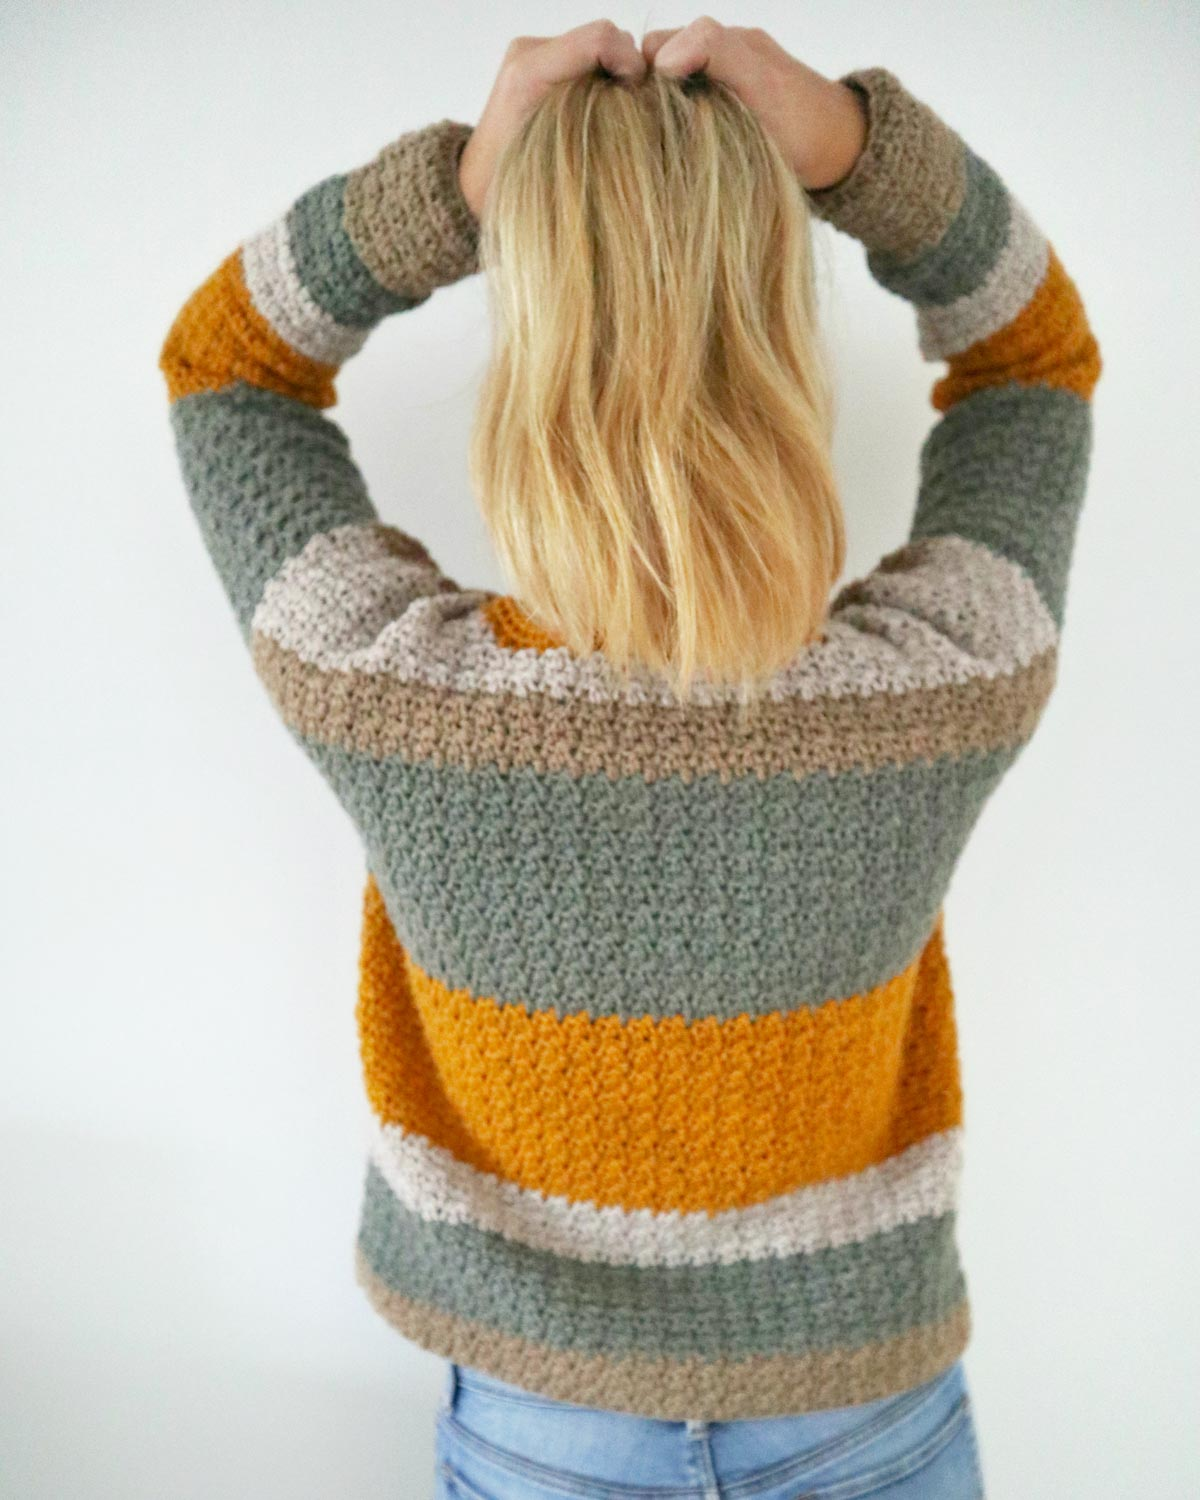 Creative construction and simple stitches come together easily in this crochet pullover pattern as viewed from behind.